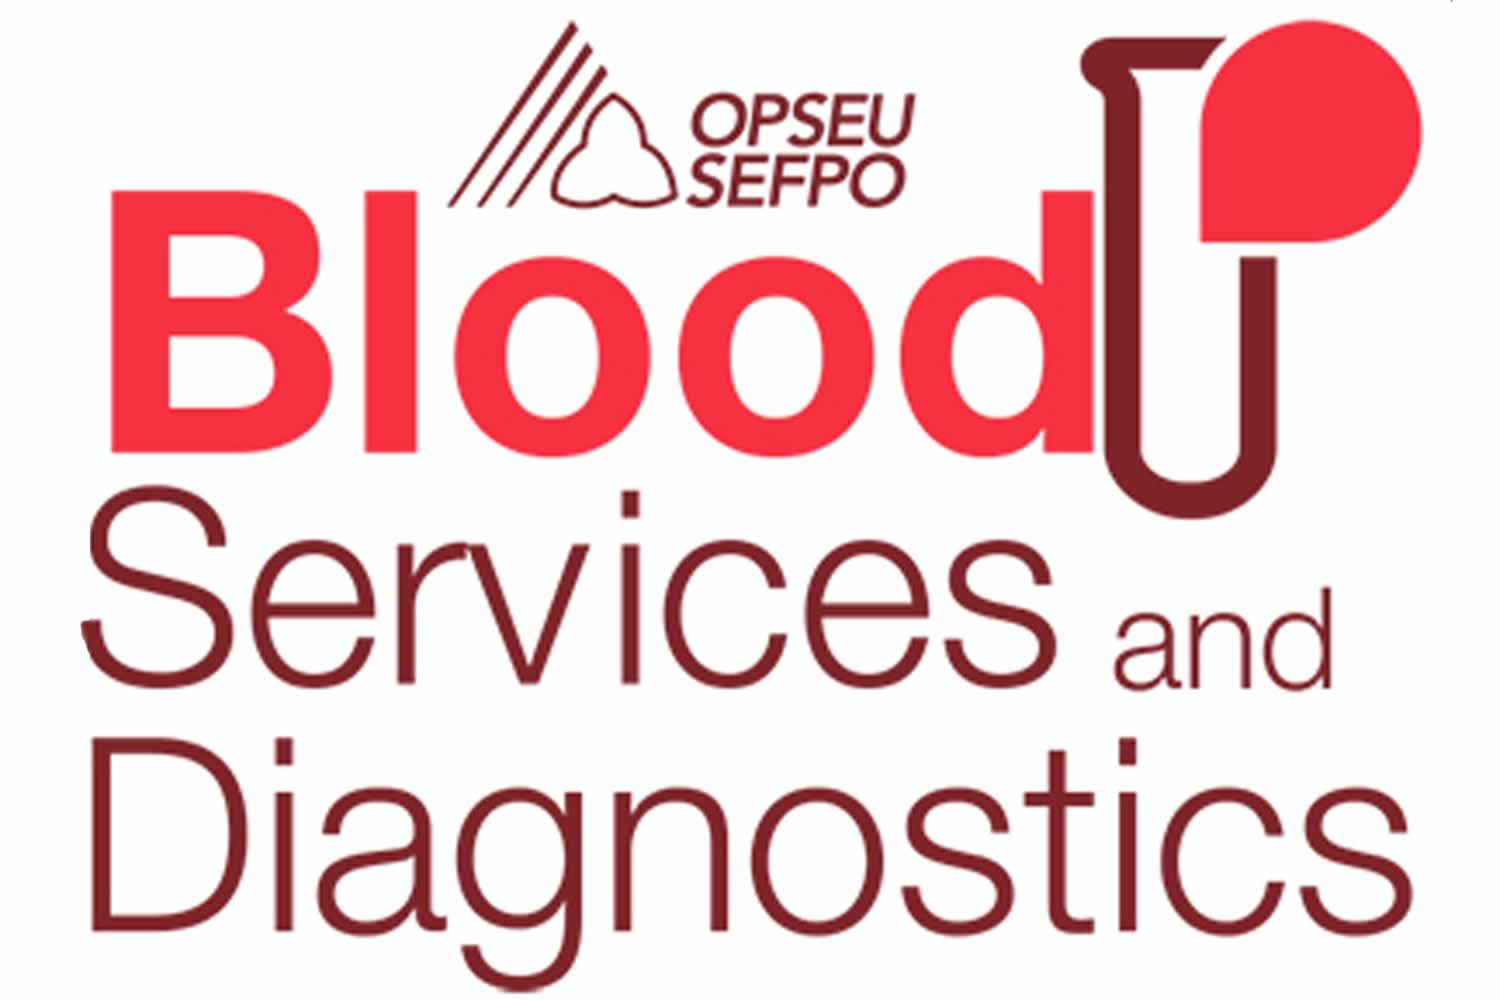 Canadian Blood Services and Diagnostics logo